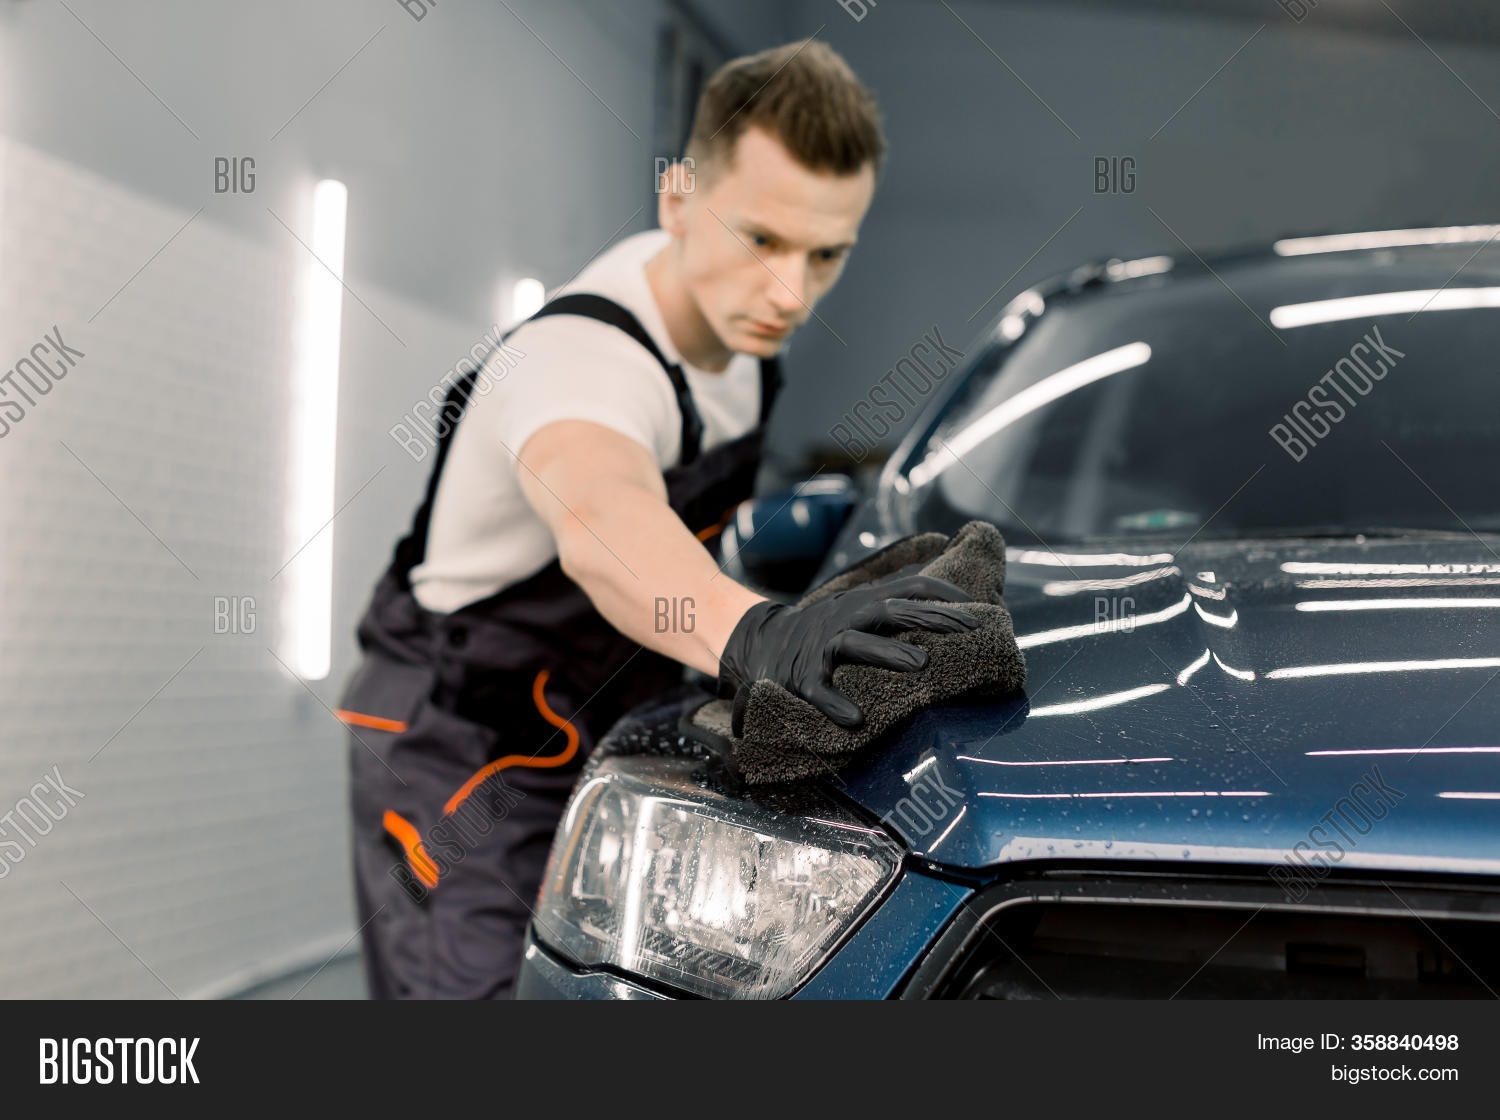 Car Detailing Cleaning Image Photo Free Trial Bigstock